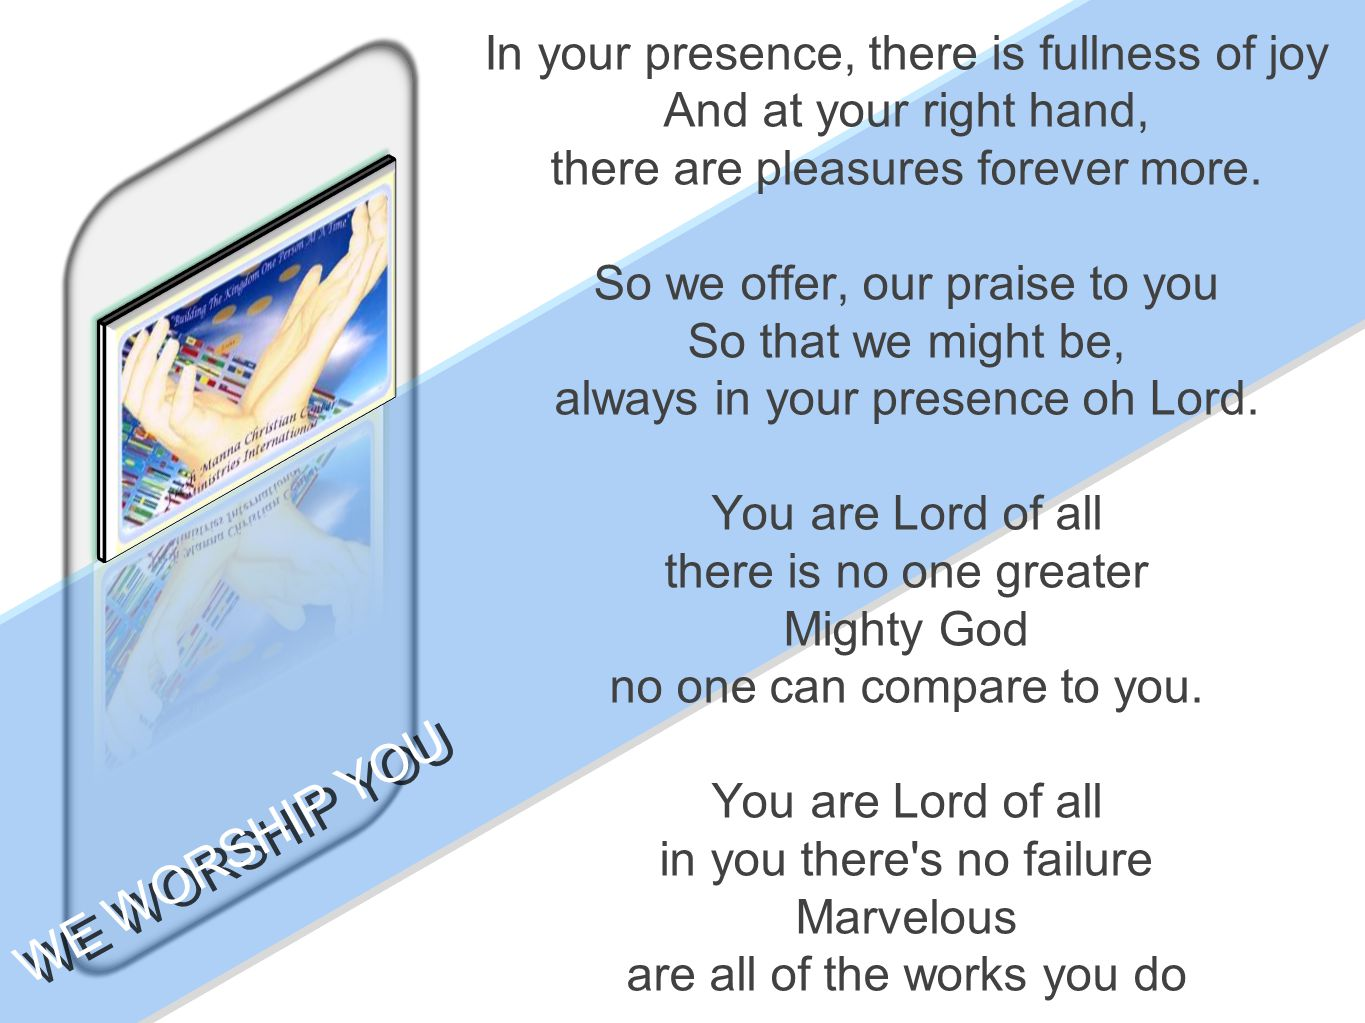 In your presence, there is fullness of joy And at your right hand, there are pleasures forever more.